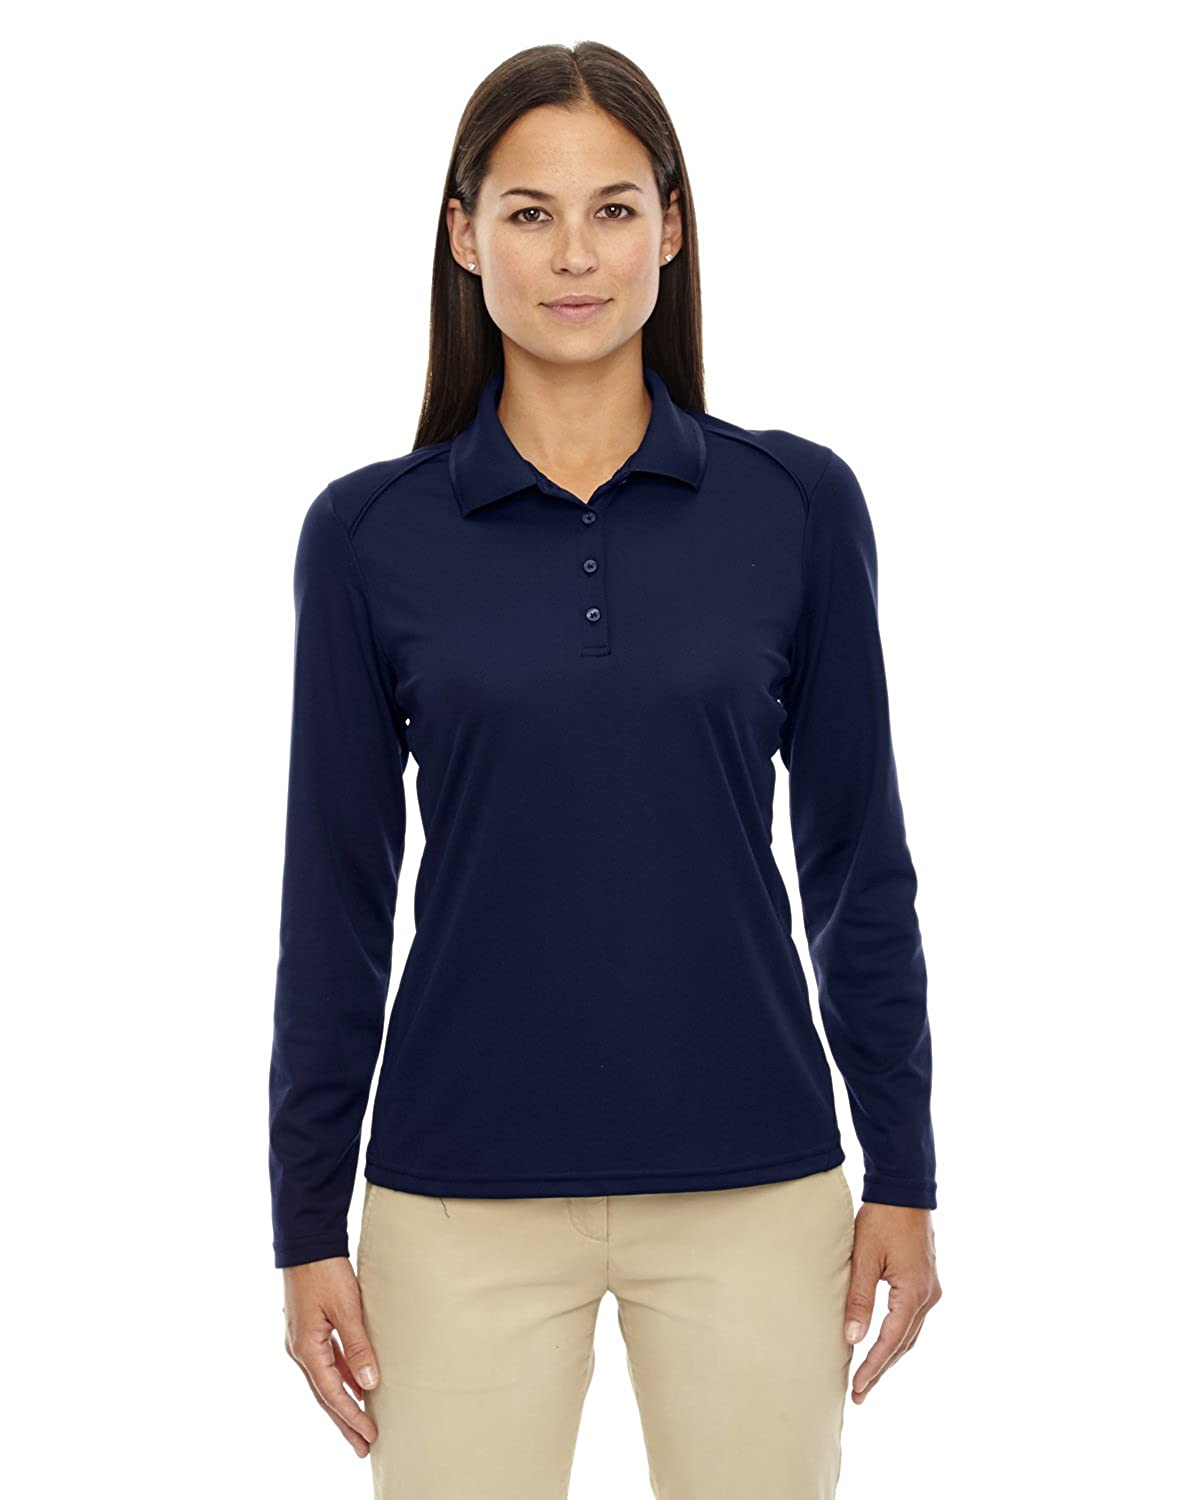 Ash City Ladies Armour Long Sleeve Polo Large, Classic Navy